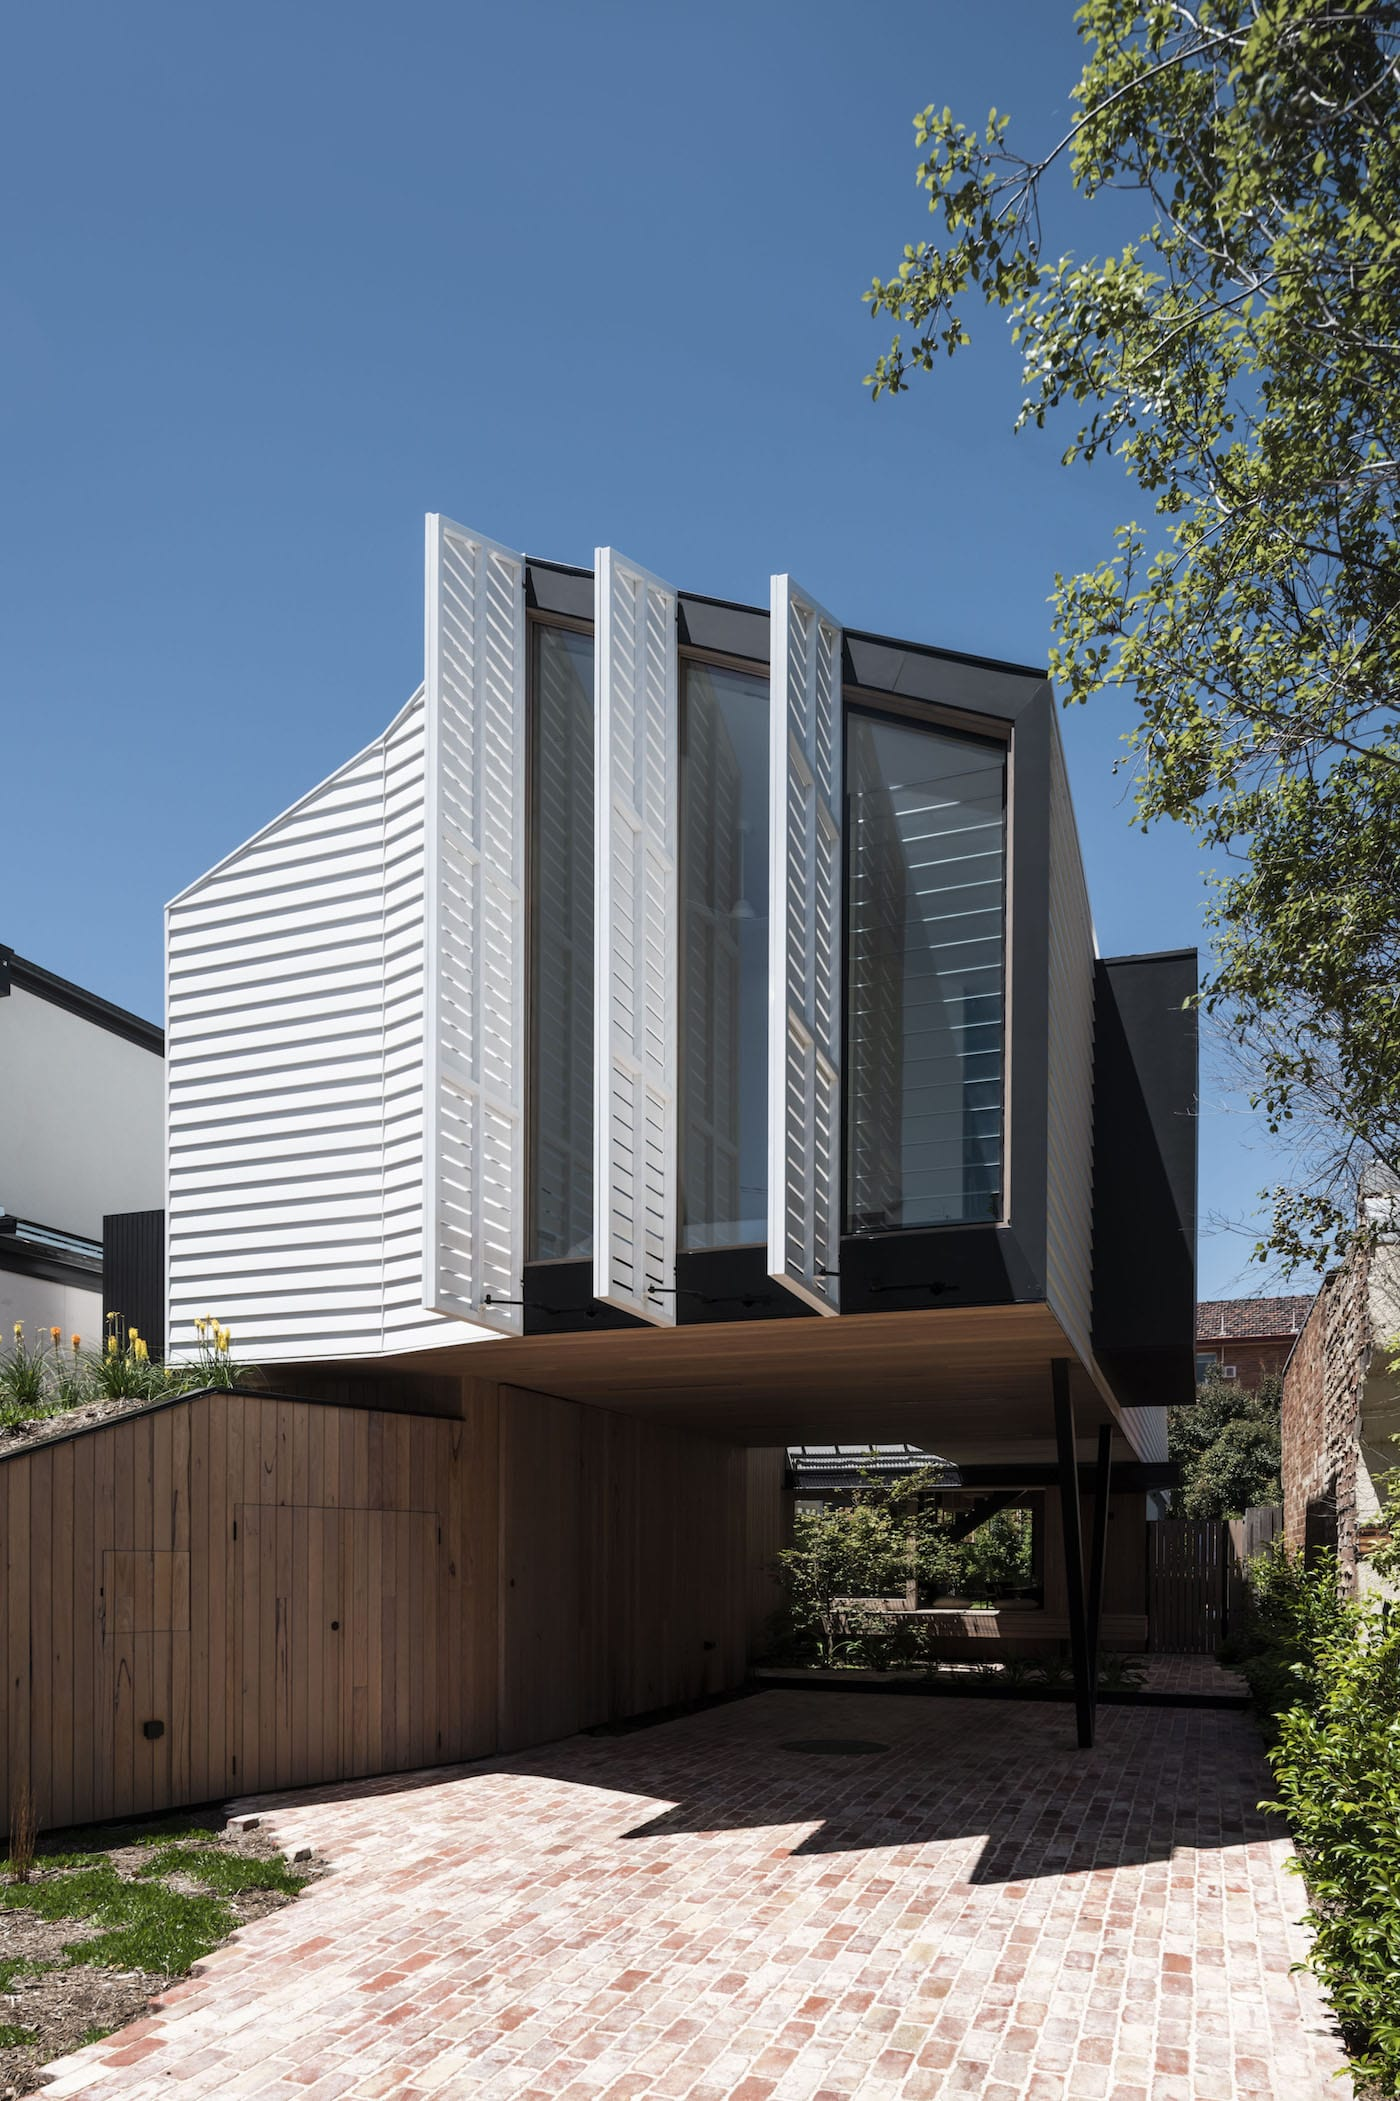 Eco friendly home with mechanical shutters